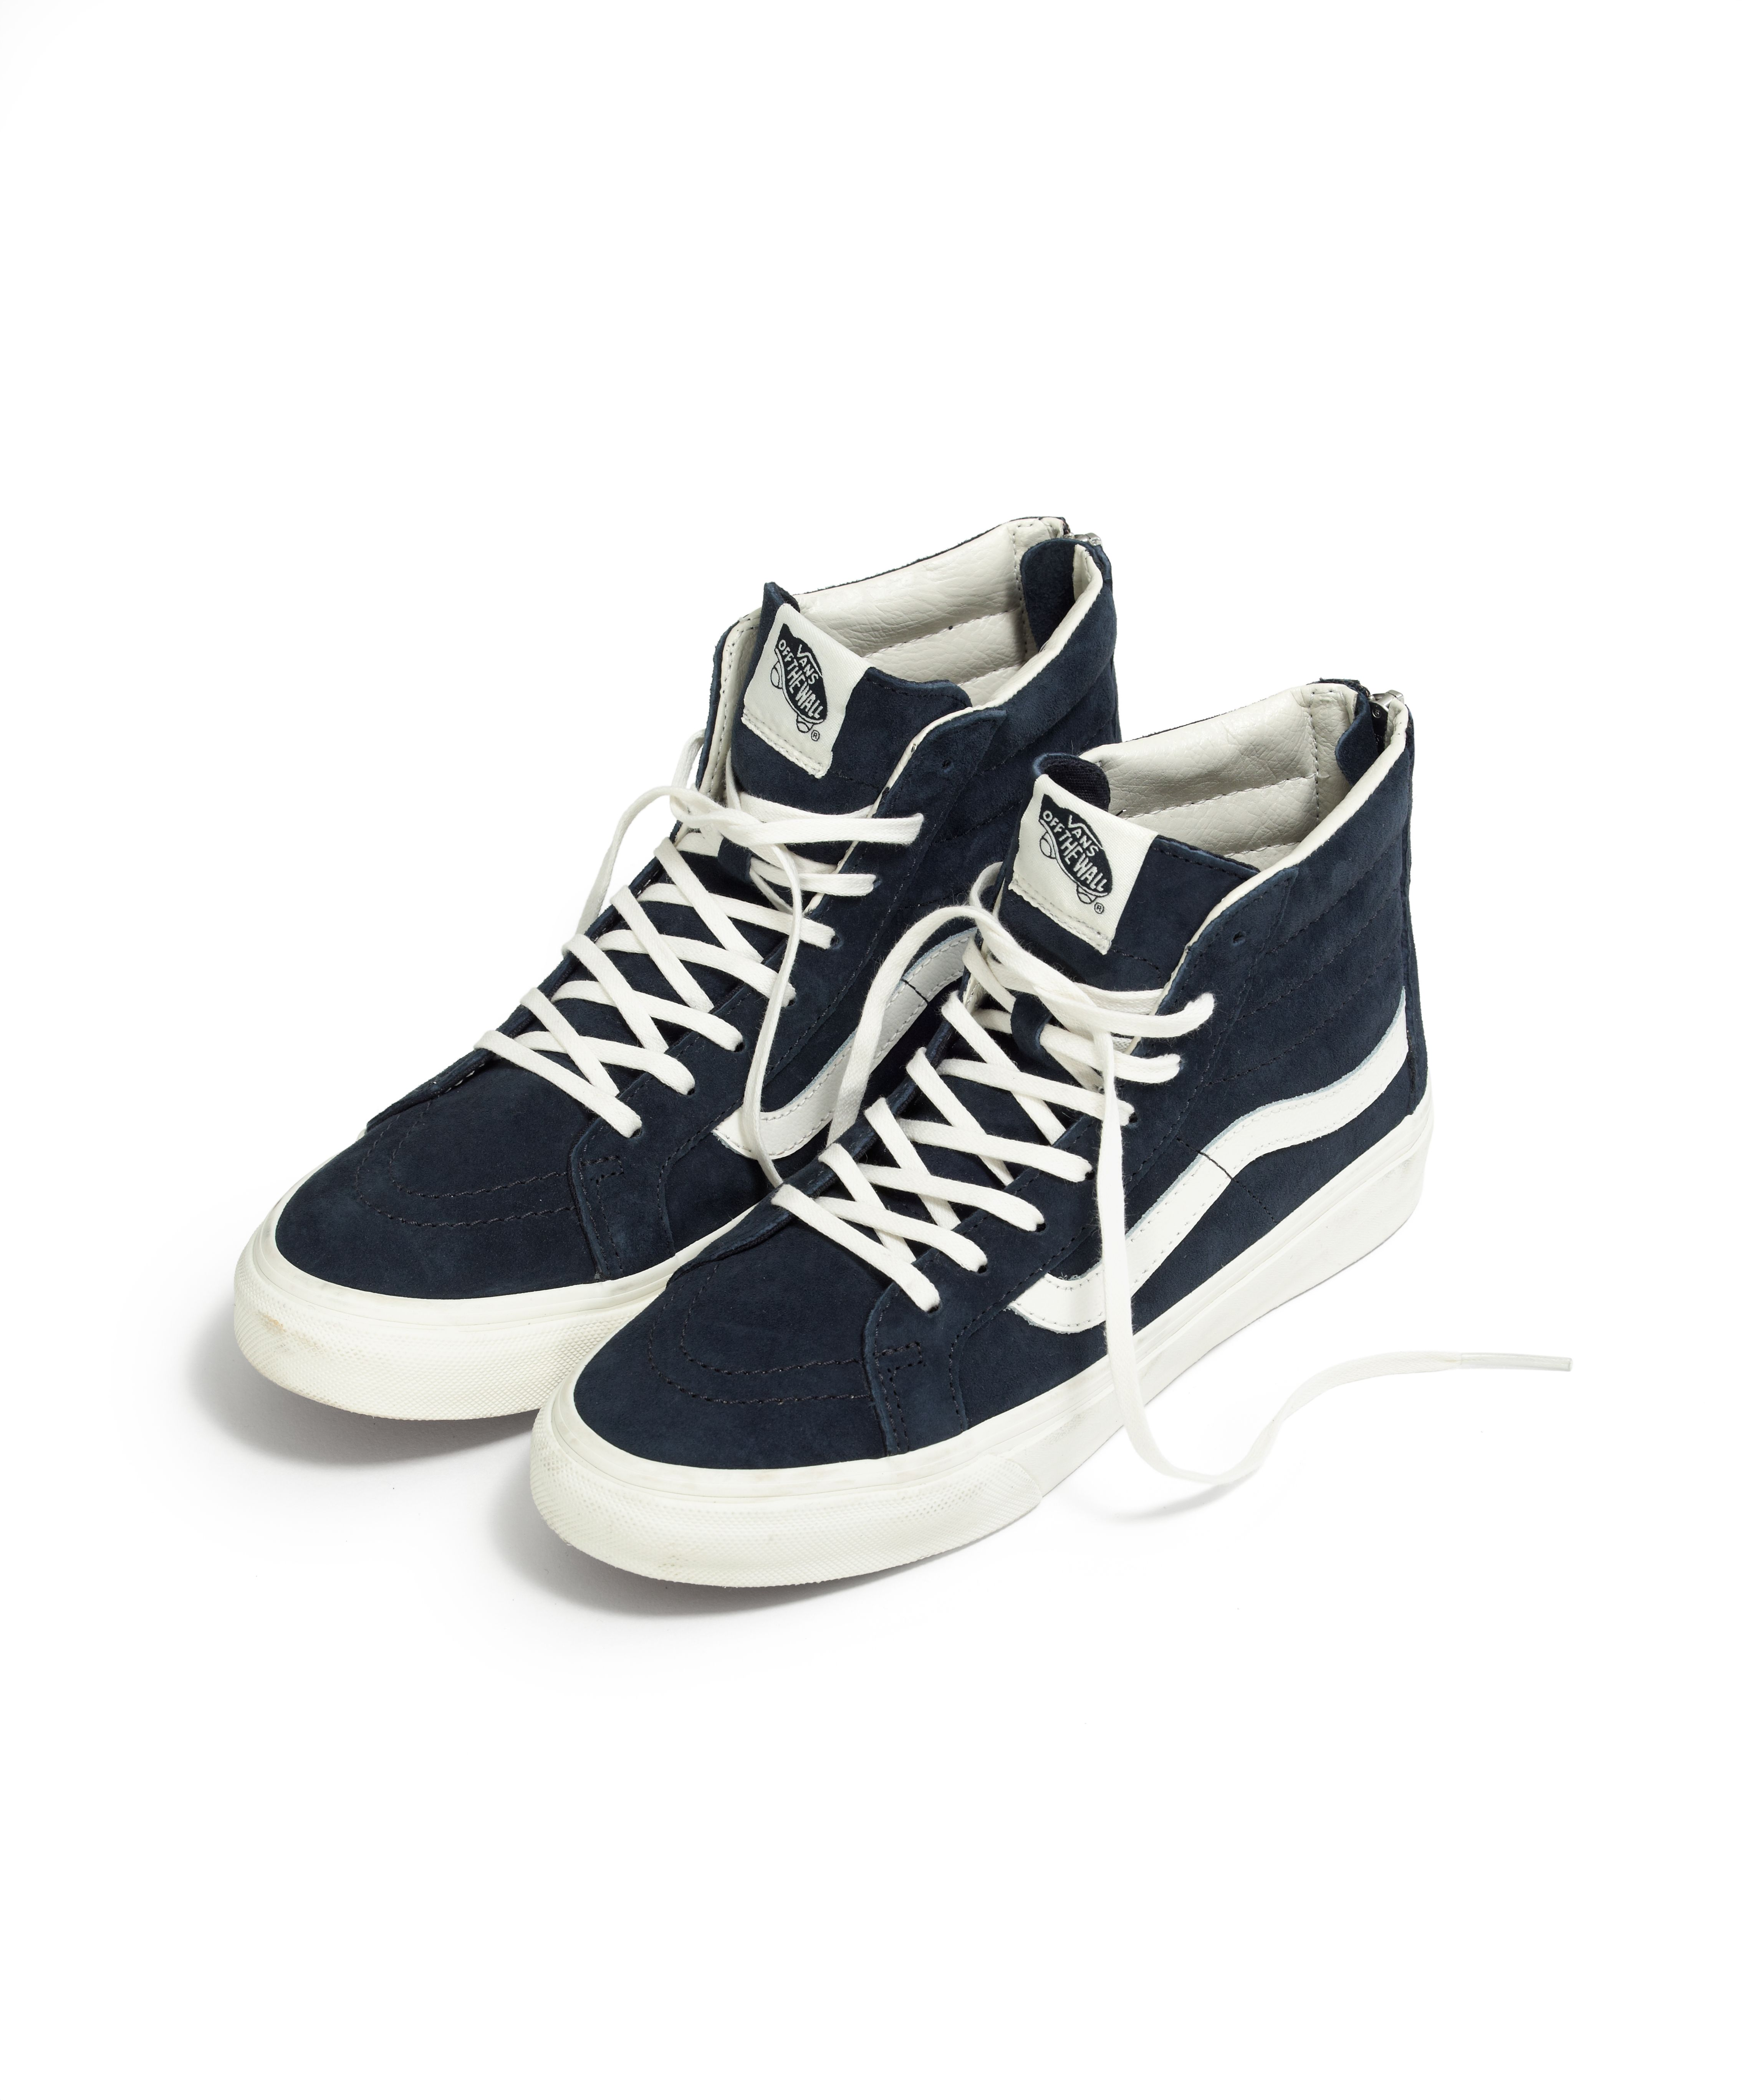 b9c3037343 madewell vans® sk8-hi slim zip high-top sneakers in navy leather.   everydaymadewell